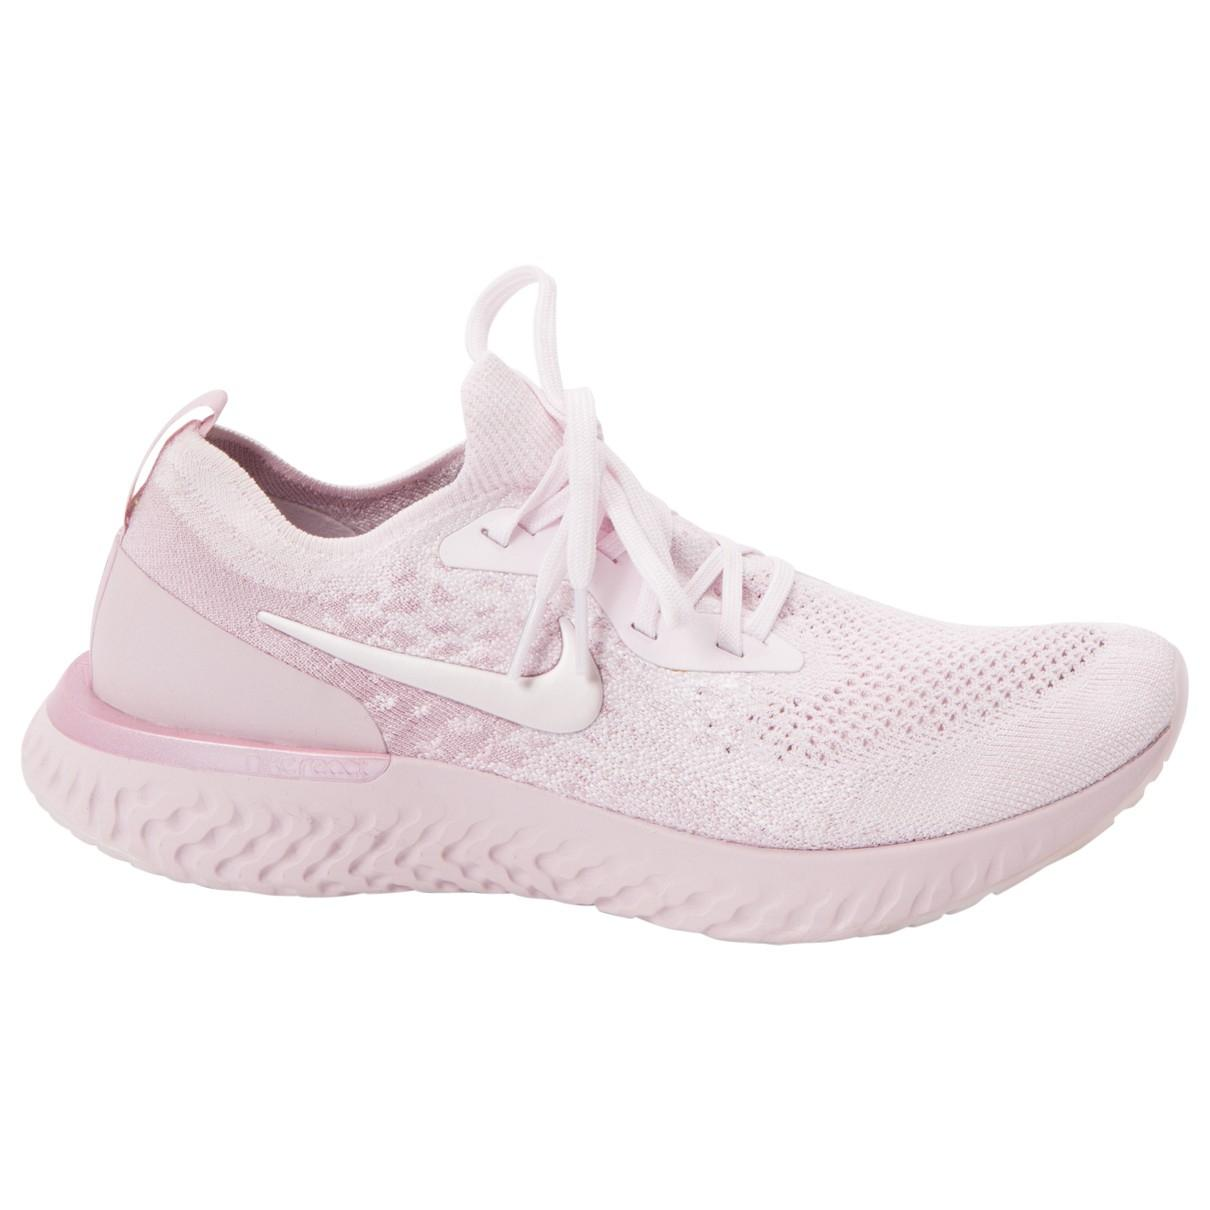 premium selection 849e6 4fc07 Lyst - Nike Cloth Trainers in Pink